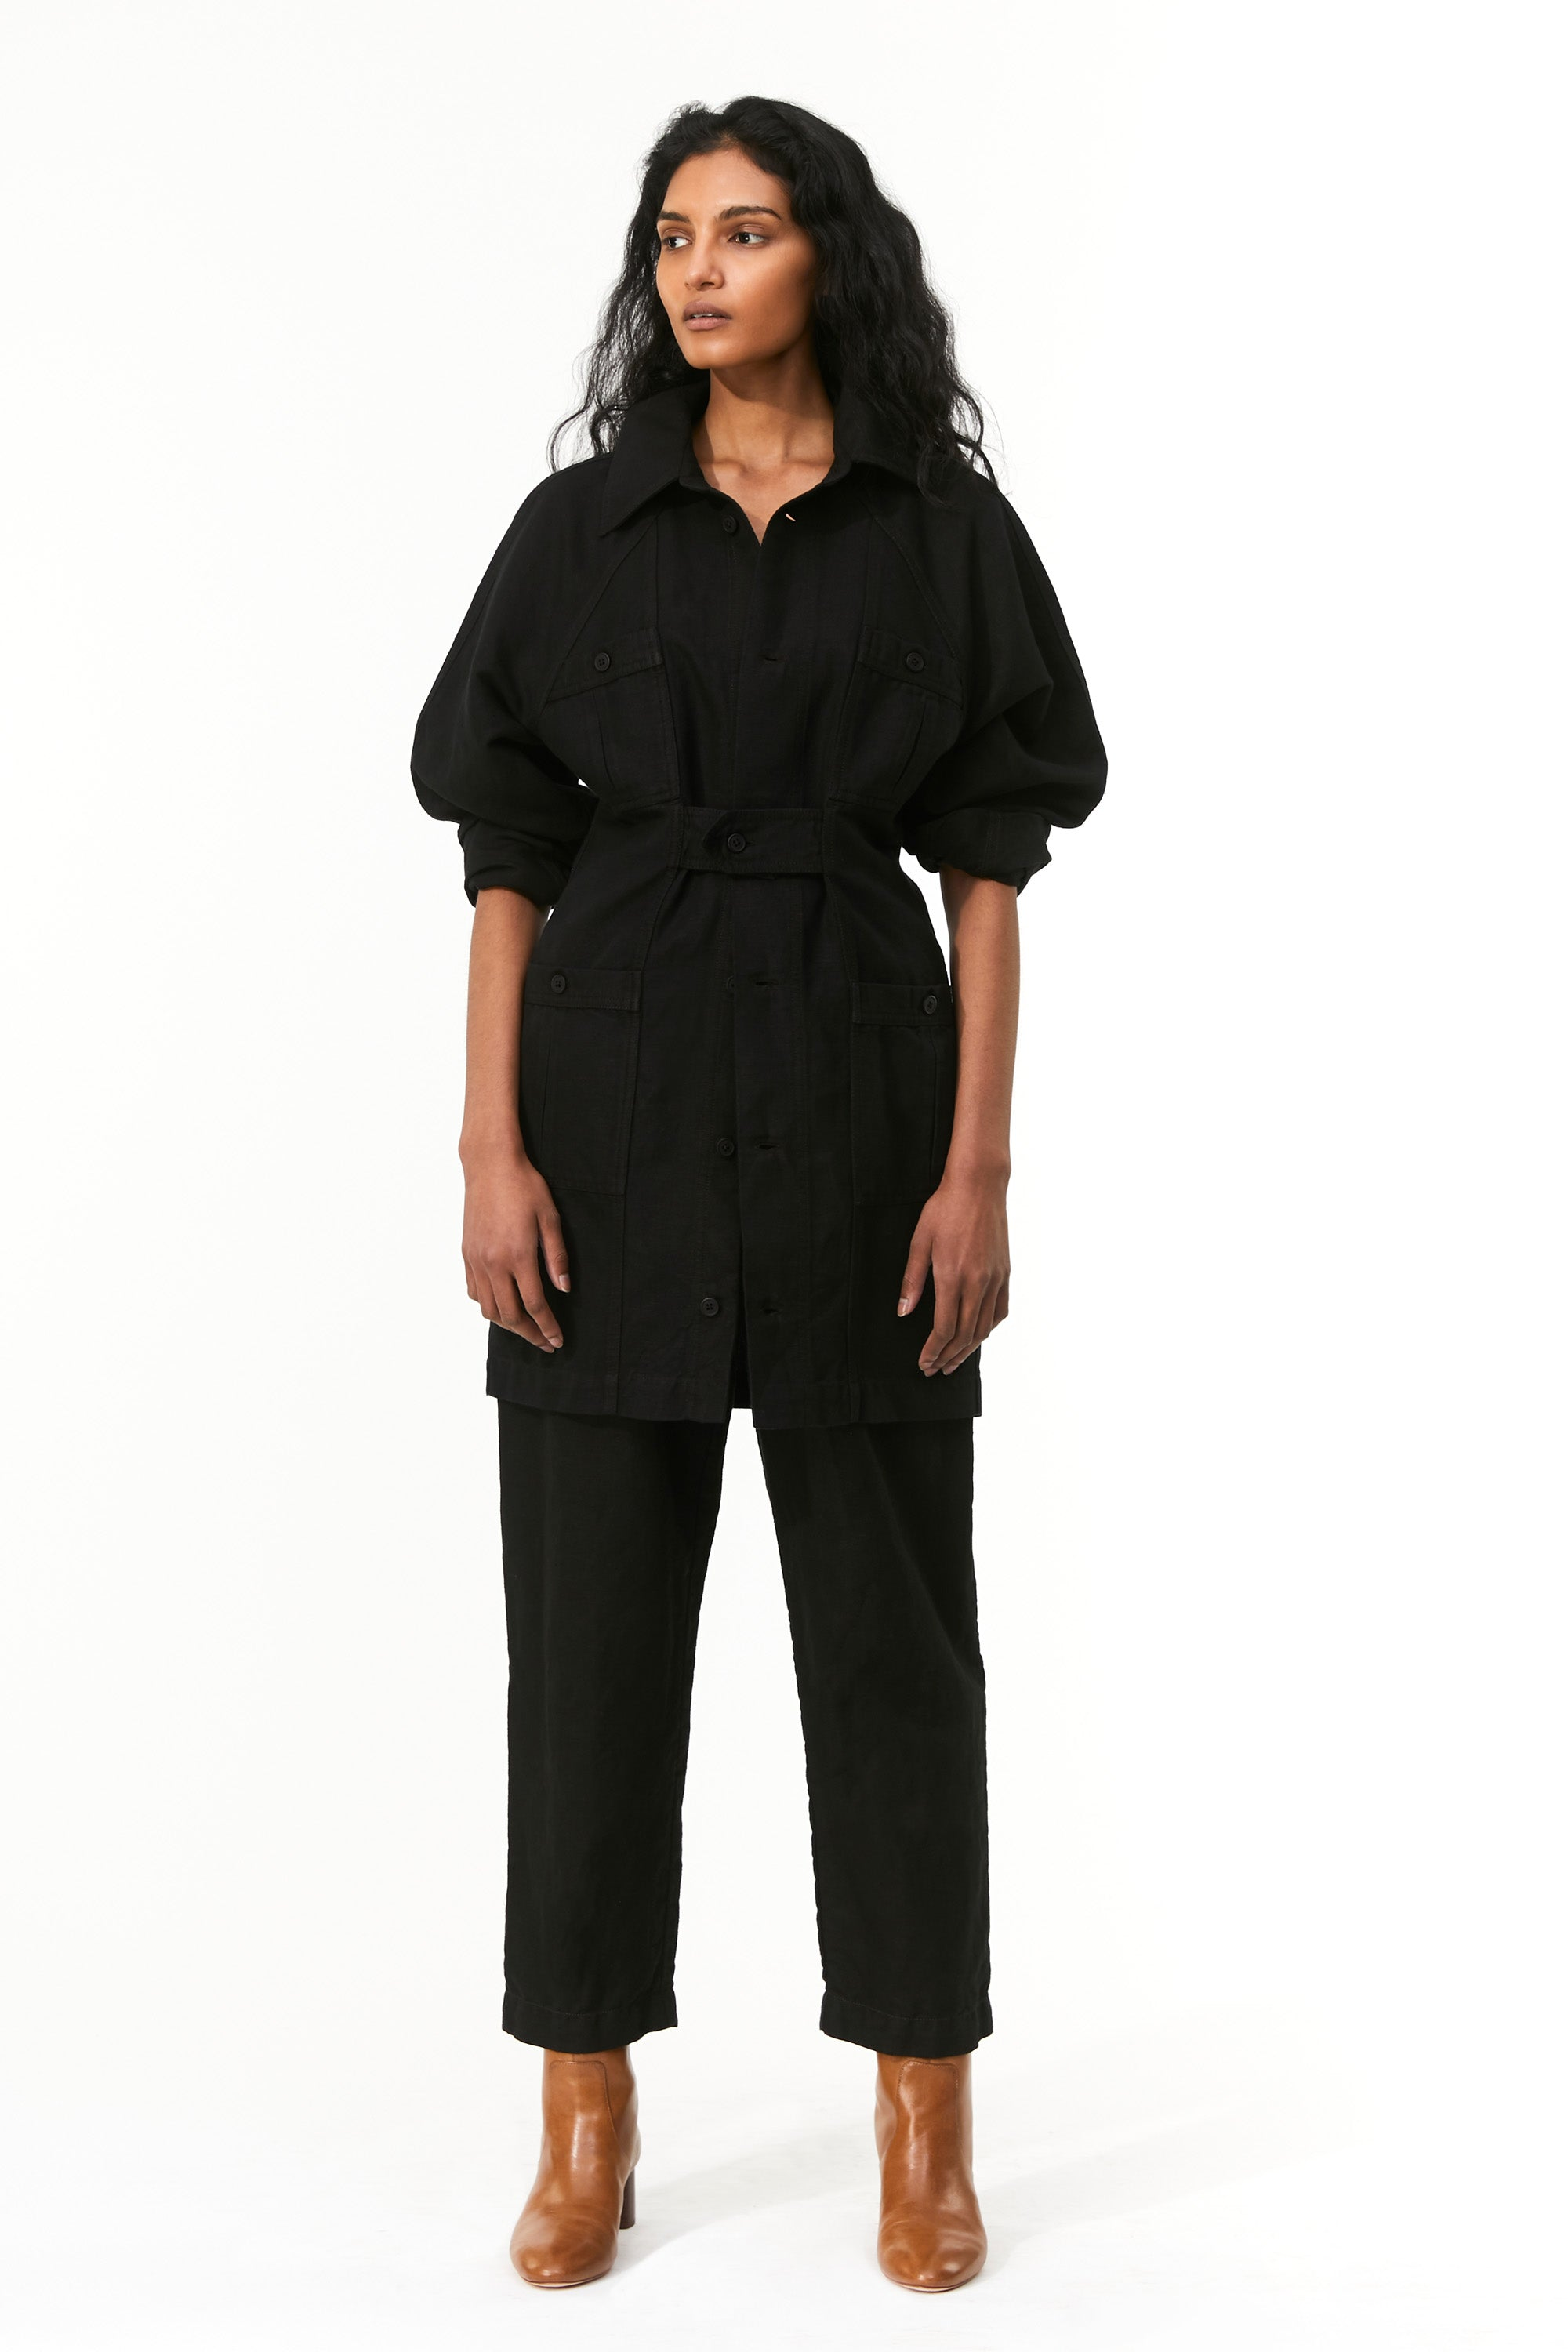 Mara Hoffman Black Ino Dress in overdyed linen and organic cotton (with Almeria pant)